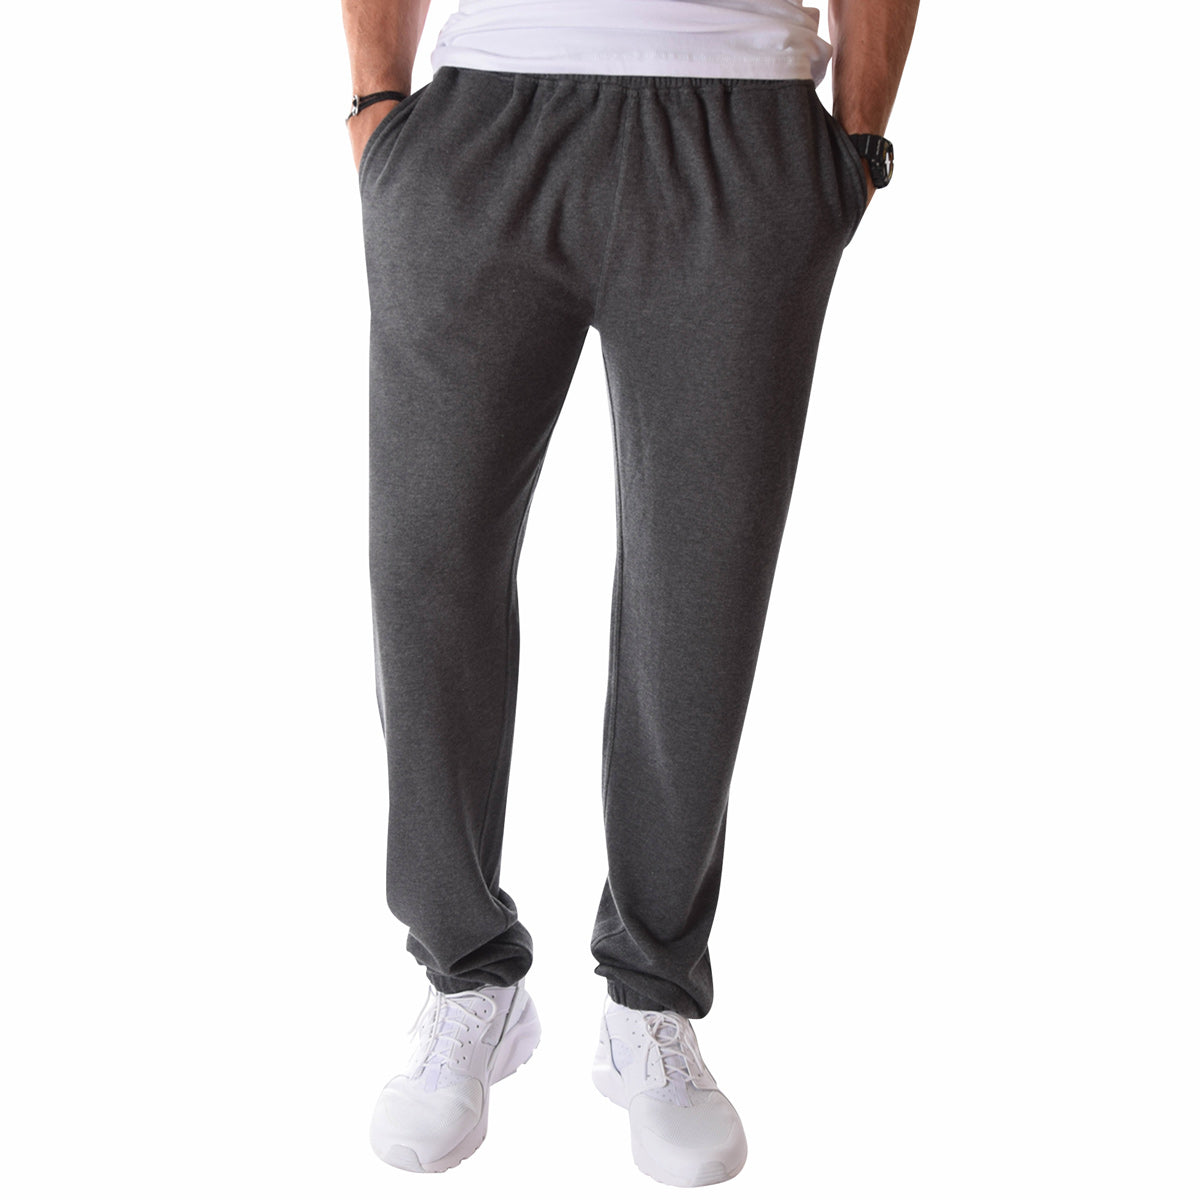 superior materials shop for sneakers Men's Tall French Terry Sweatpants in Charcoal Mix -